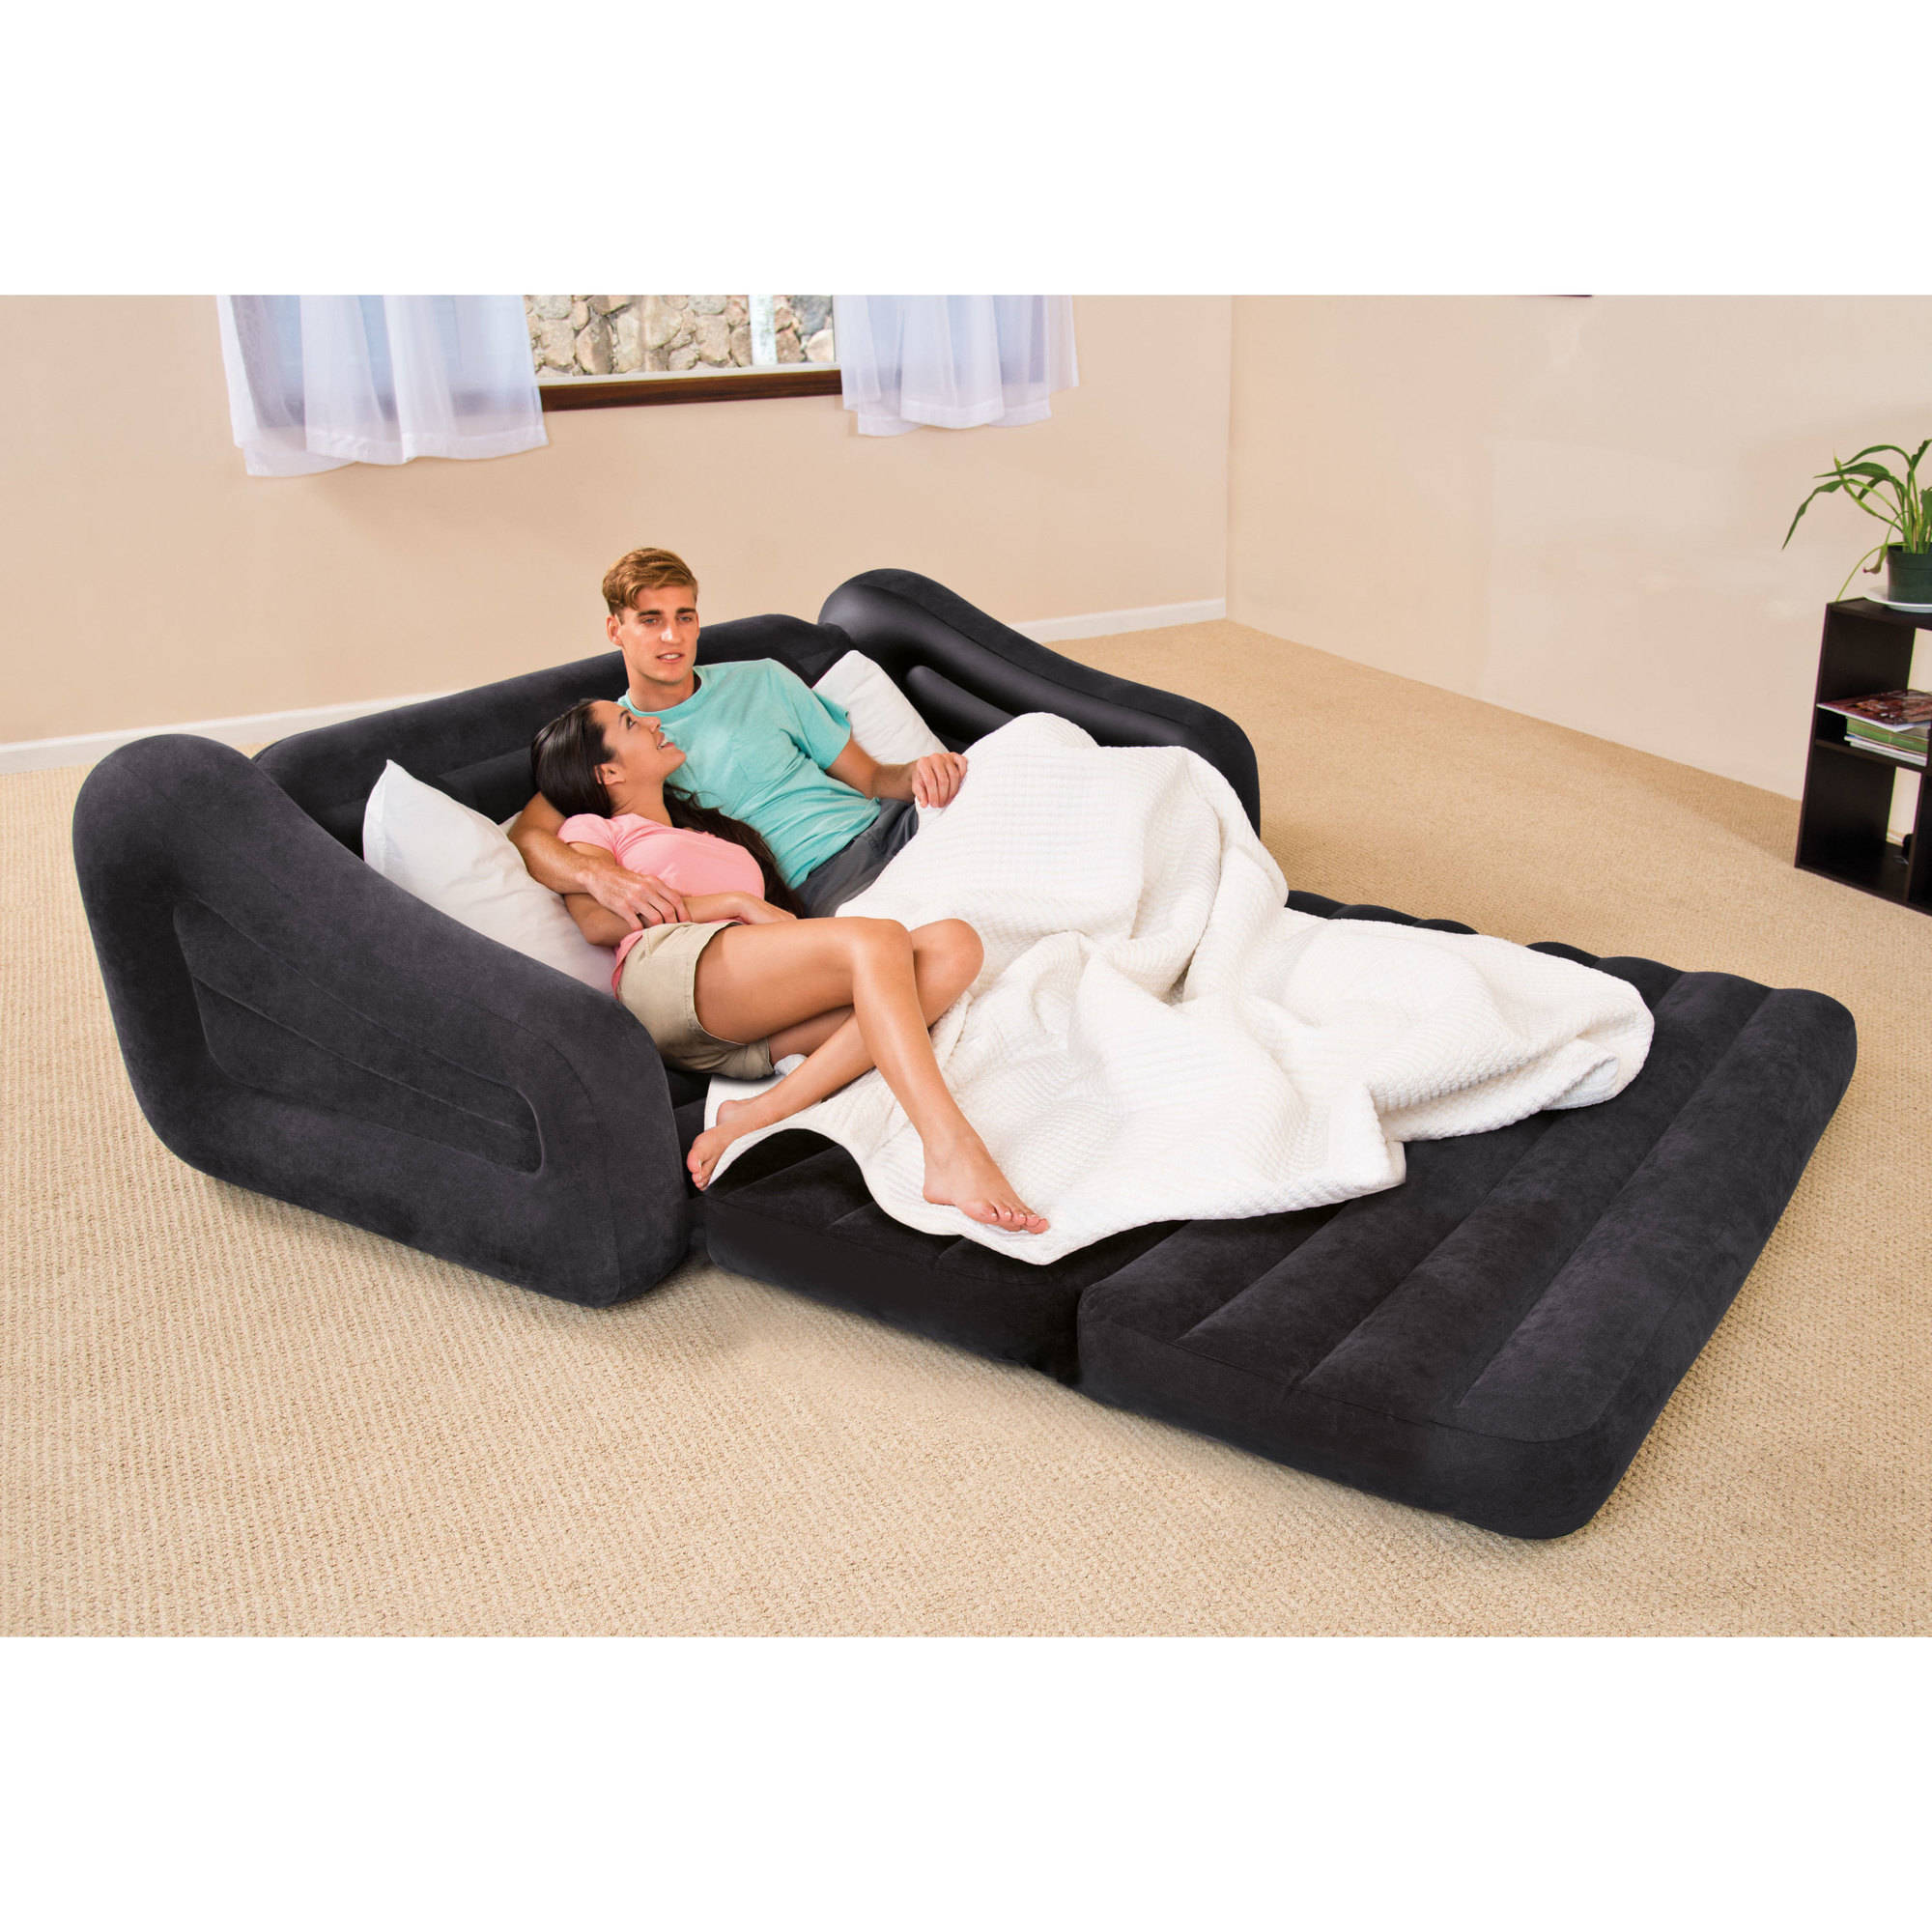 Inflatable pull out air sofa bed mattress sleeper blow up for Sectional sofa with pull out bed and recliner